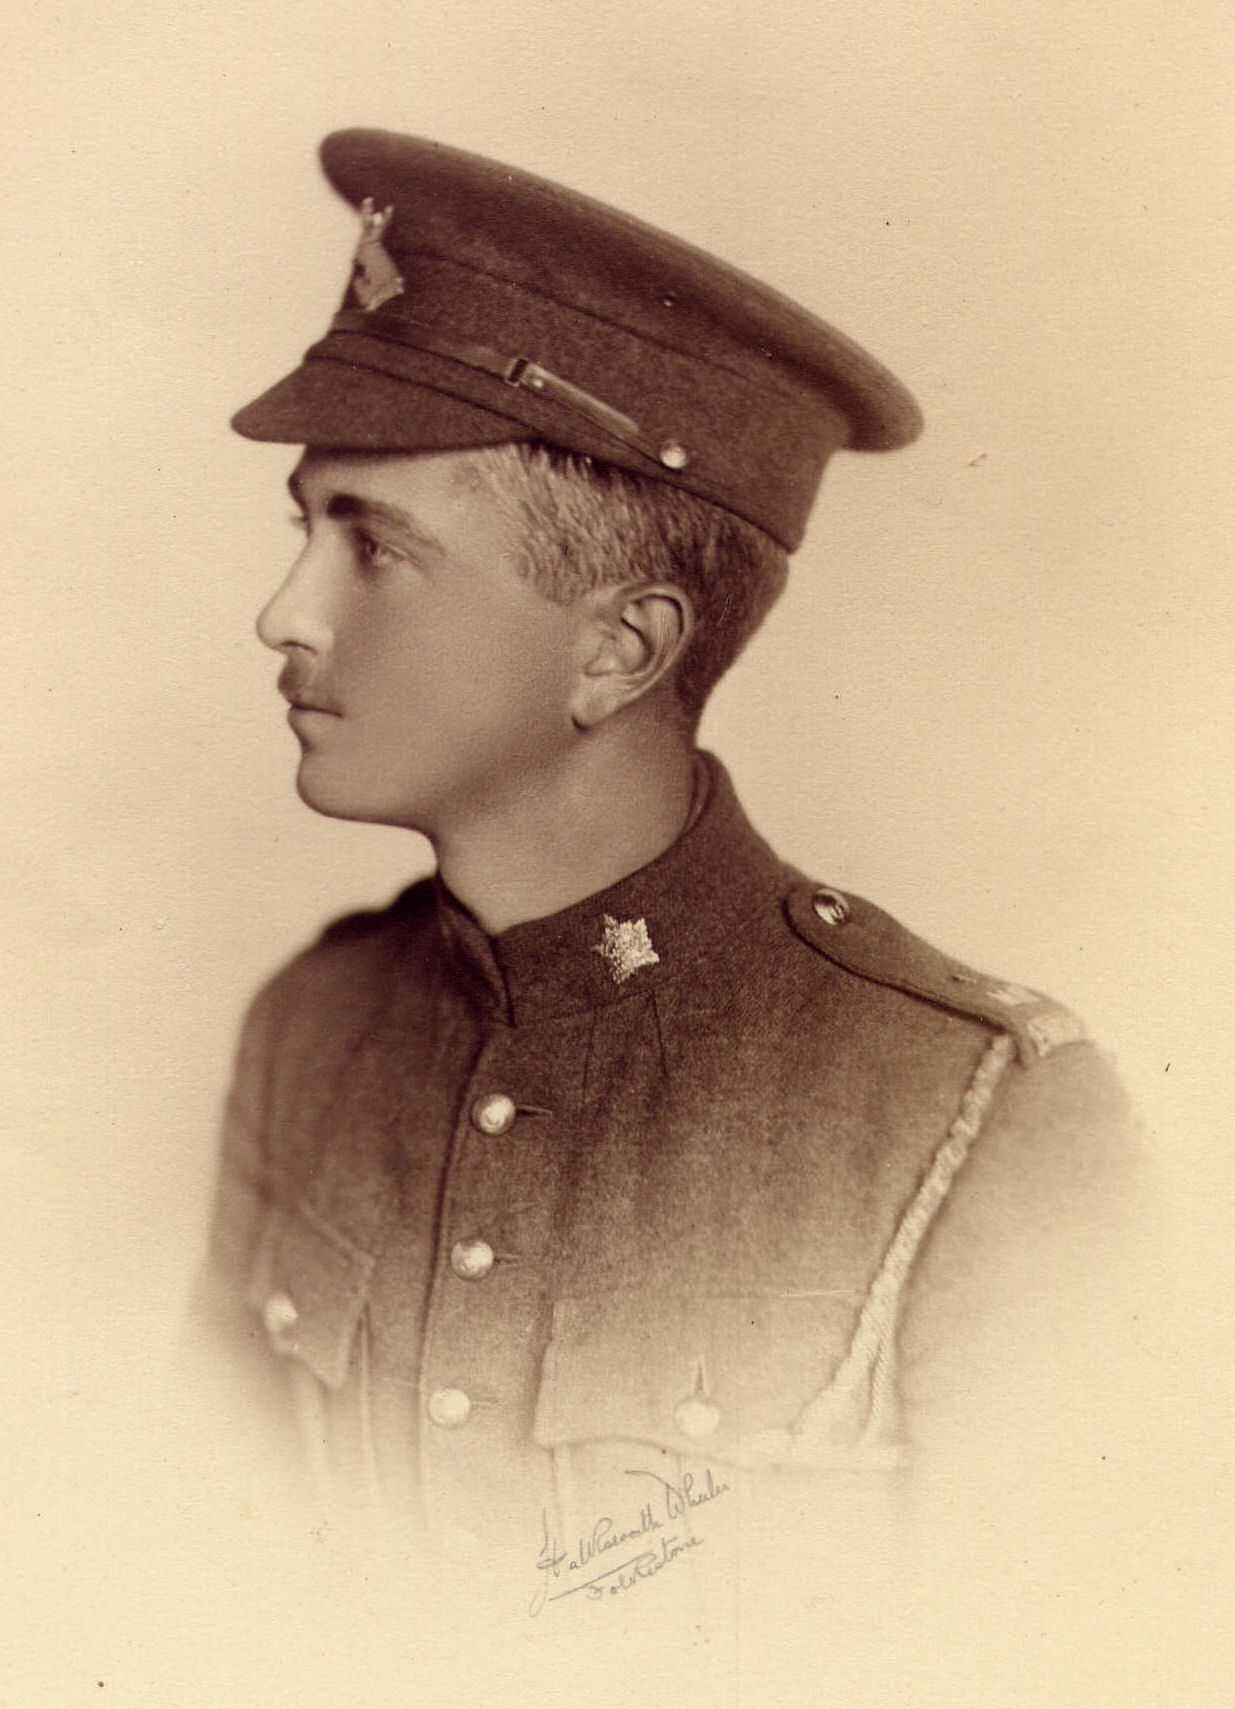 Photo of Roderick Mackenzie Ferguson– Roderick Mackenzie Ferguson enlisted 1914 4th Canadian Mounted Rifles, served with them till early 1916 when commissioned into Gordon Highlanders